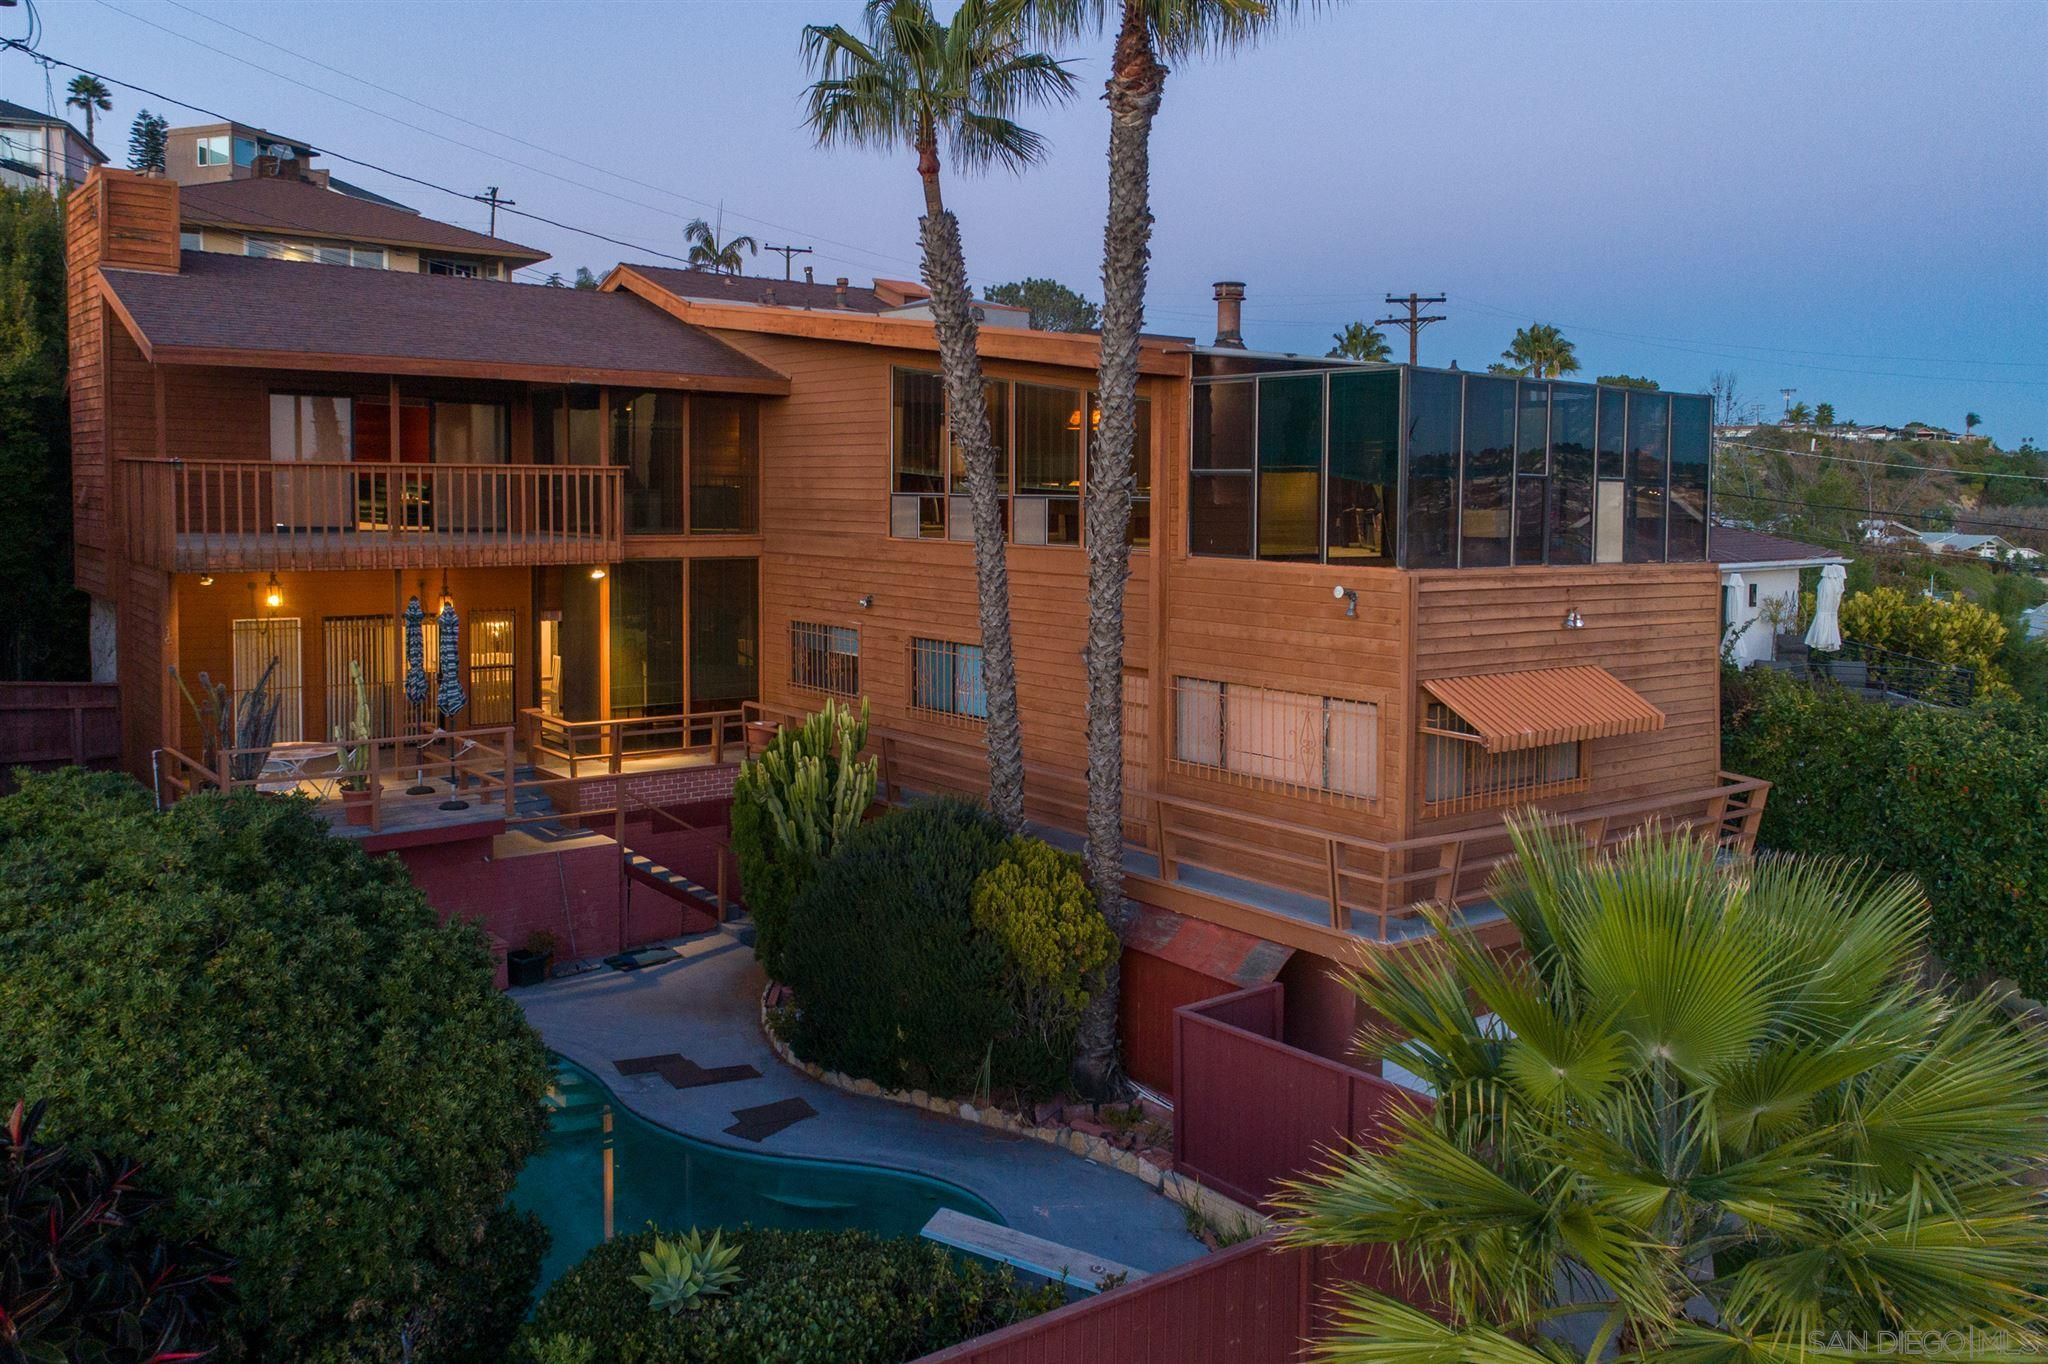 Main Photo: PACIFIC BEACH House for sale : 4 bedrooms : 2491 Wilbur Ave in San Diego